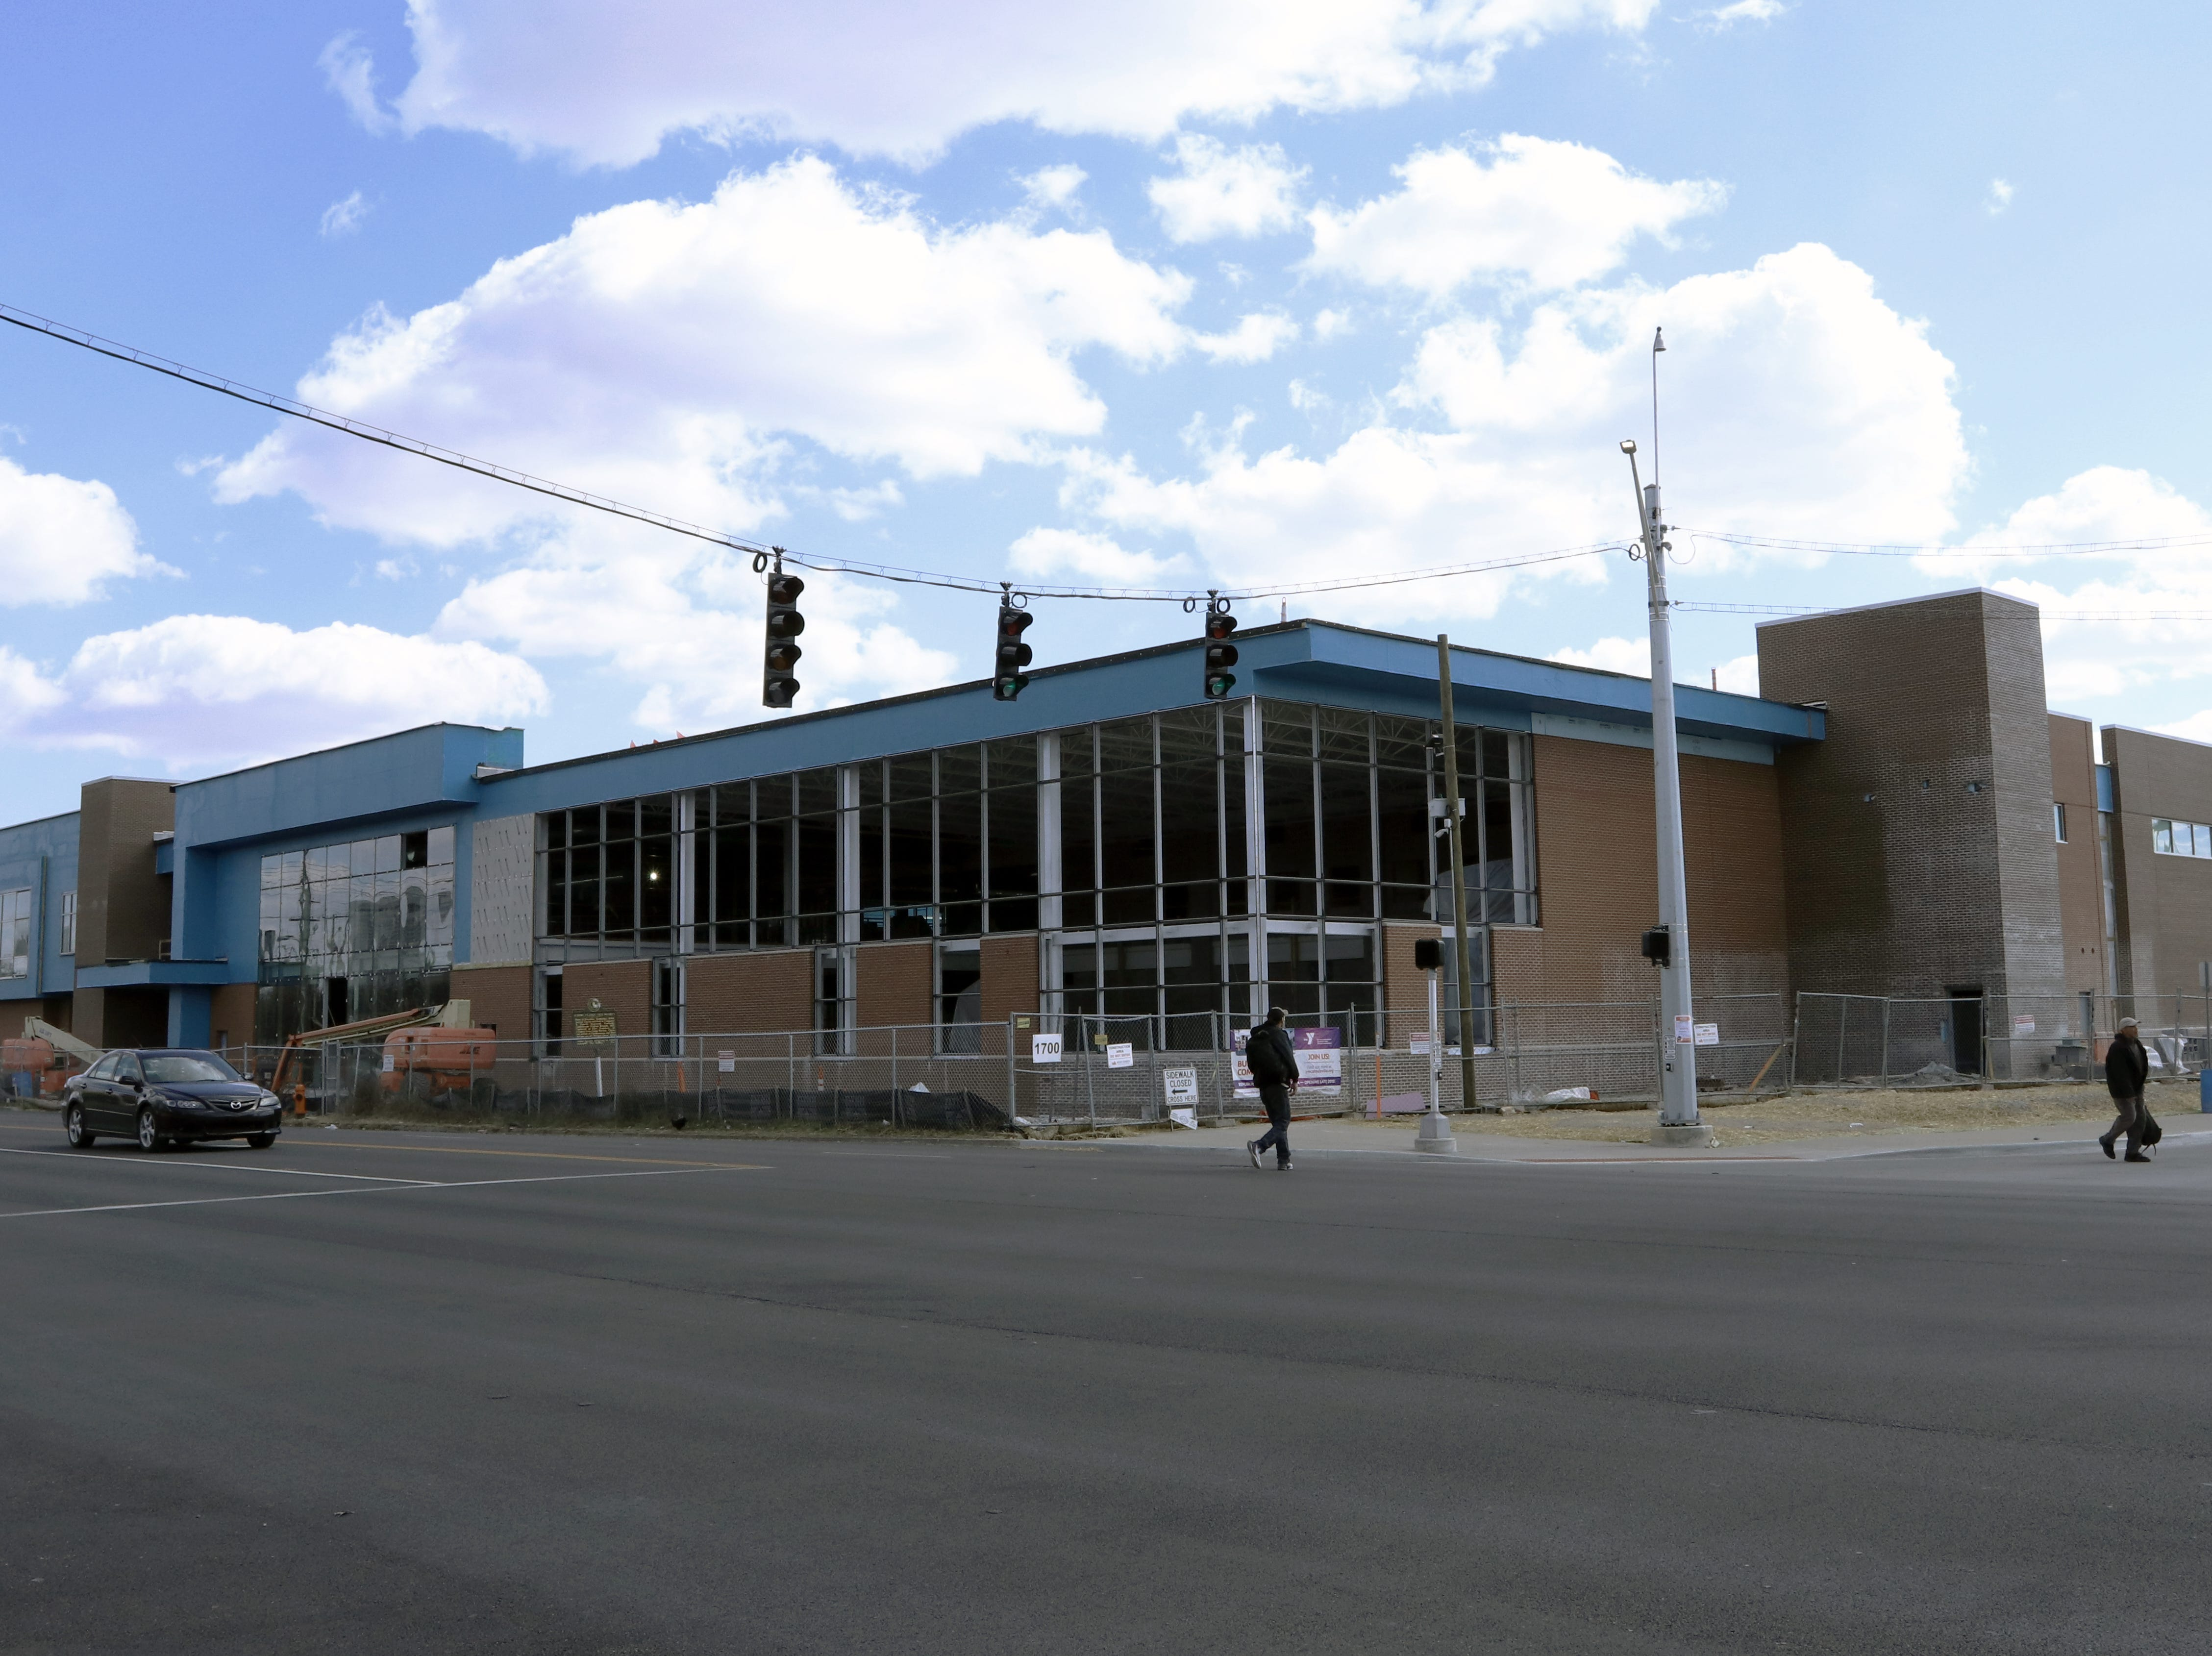 A YMCA is under construction at the intersection of Broadway and 18th Street in Louisville.